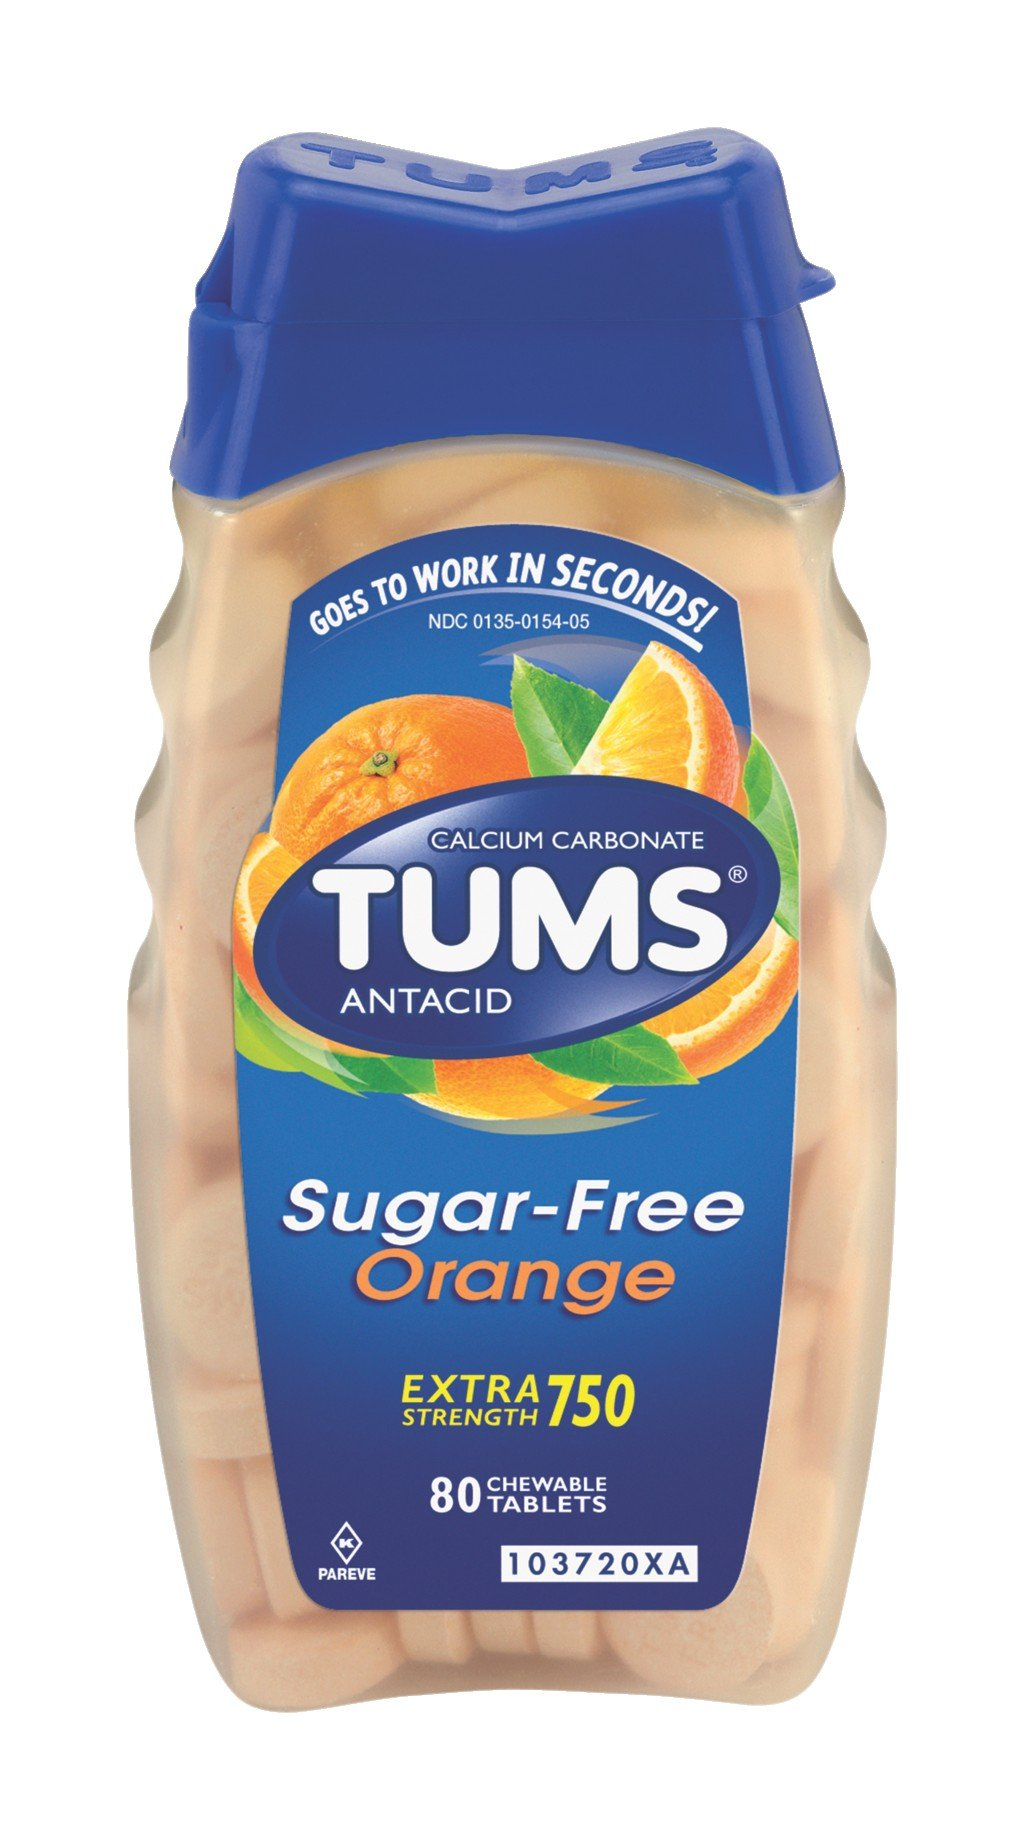 Tums Antacid Chewable Tablets, Extra Strength, Sugar free, Orange, 80-Count Bottles (Pack of 4) by TUMS